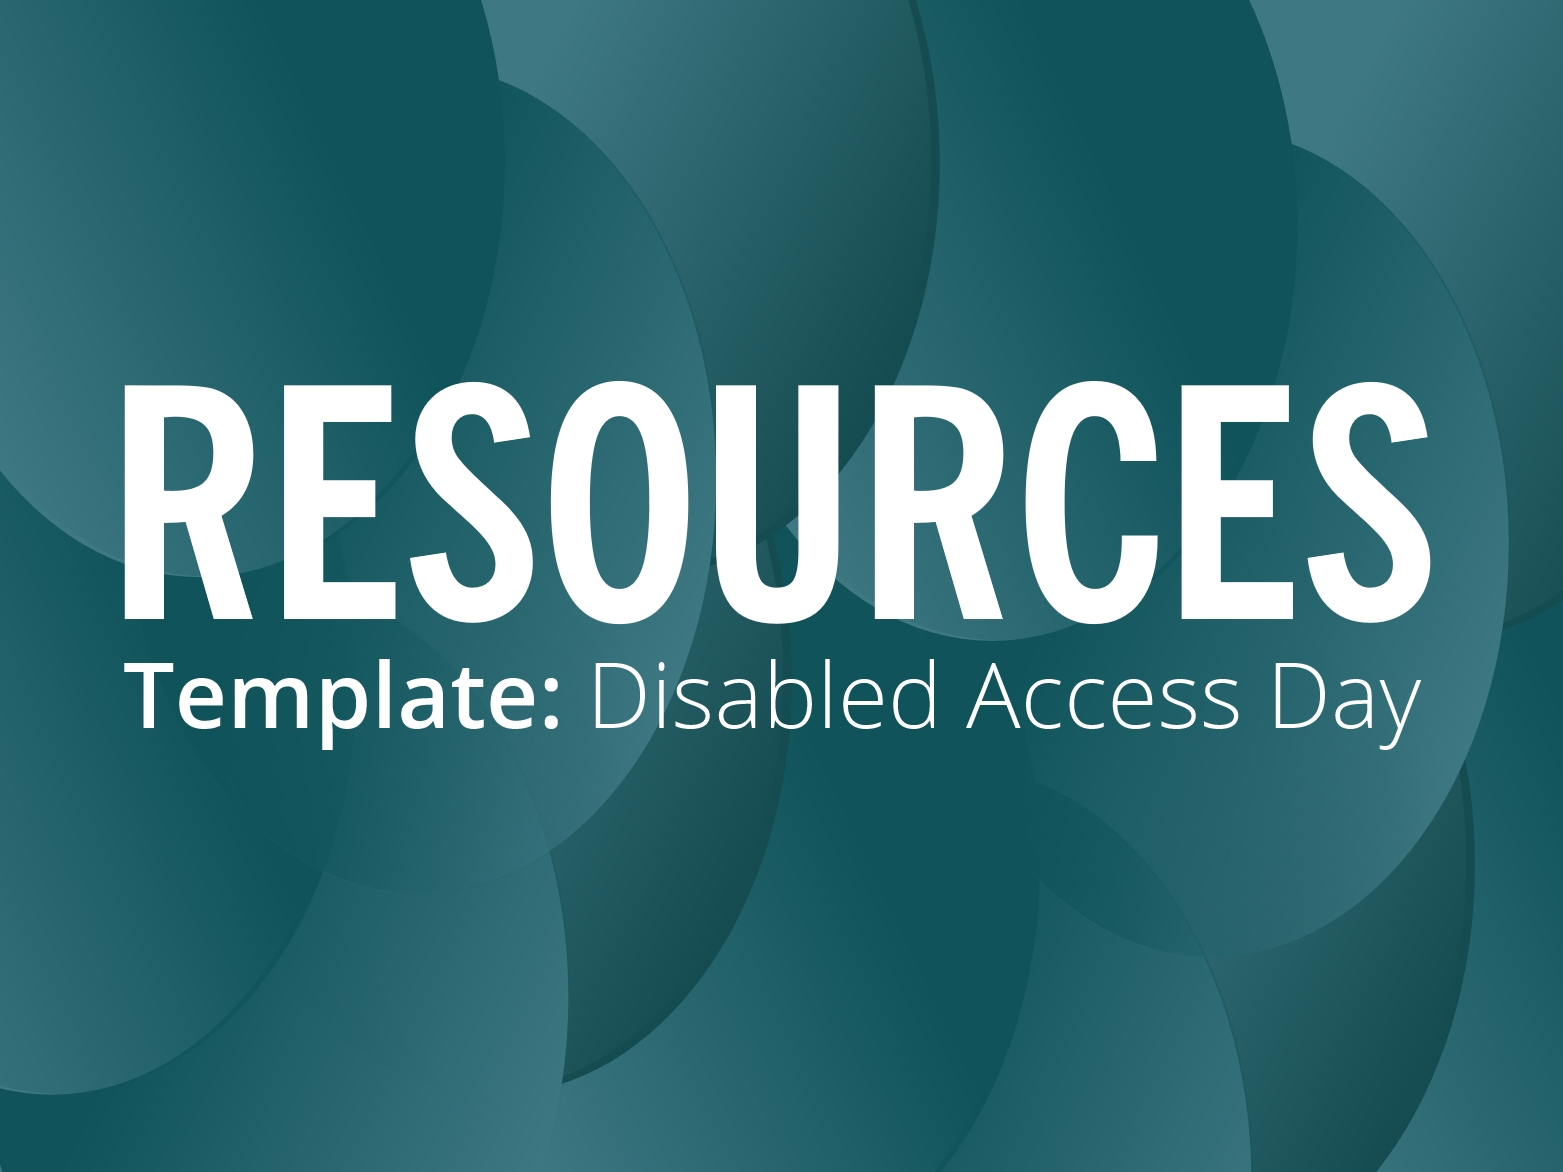 RESOURCES: Disabled Access Day, Saturday 16 March – MyCouncillor template